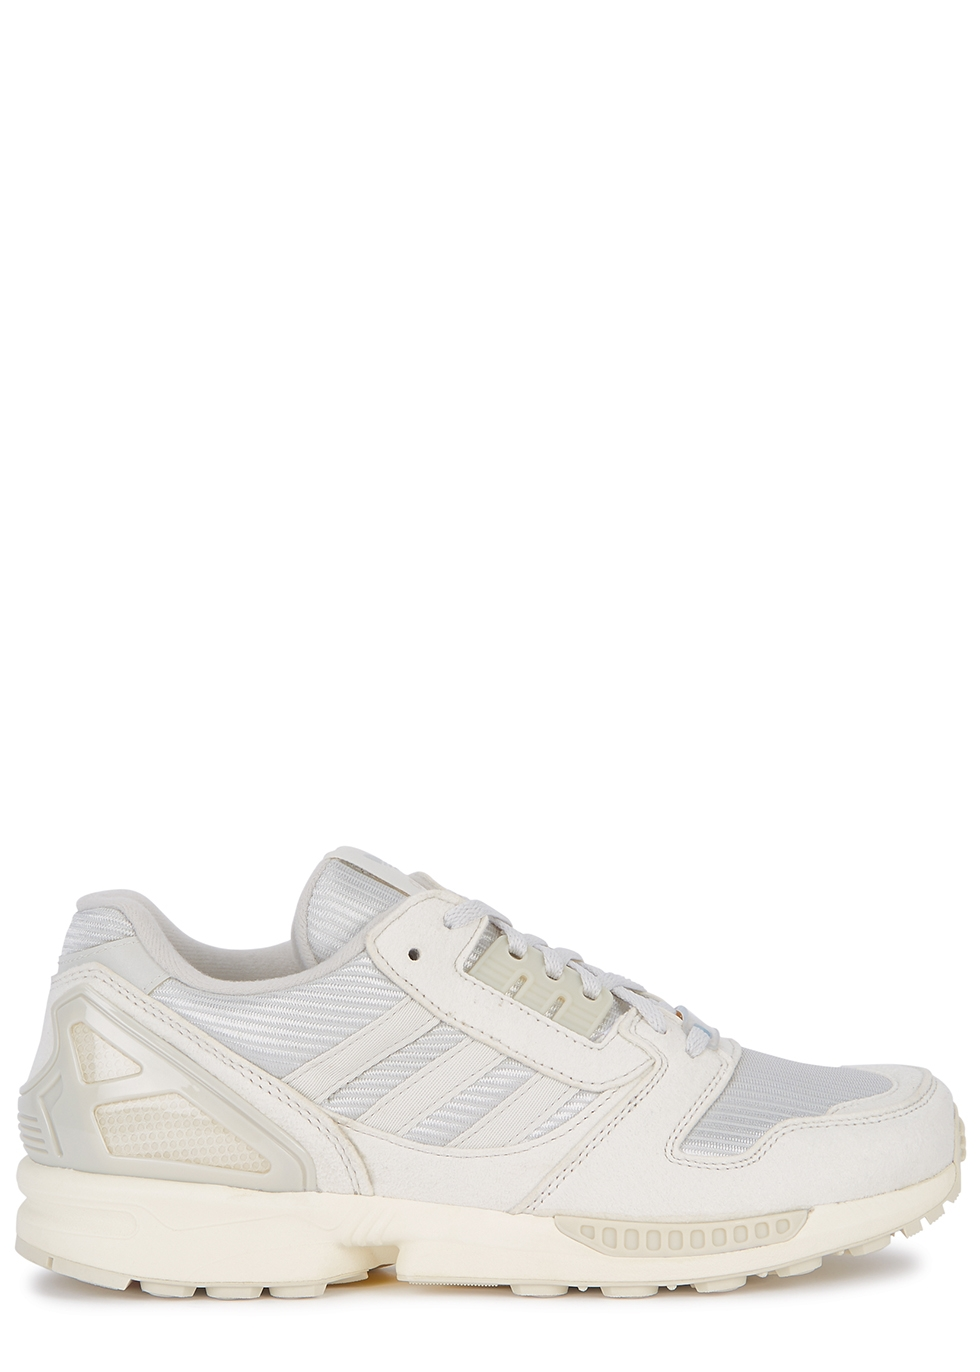 ZX 8000 off-white mesh sneakers